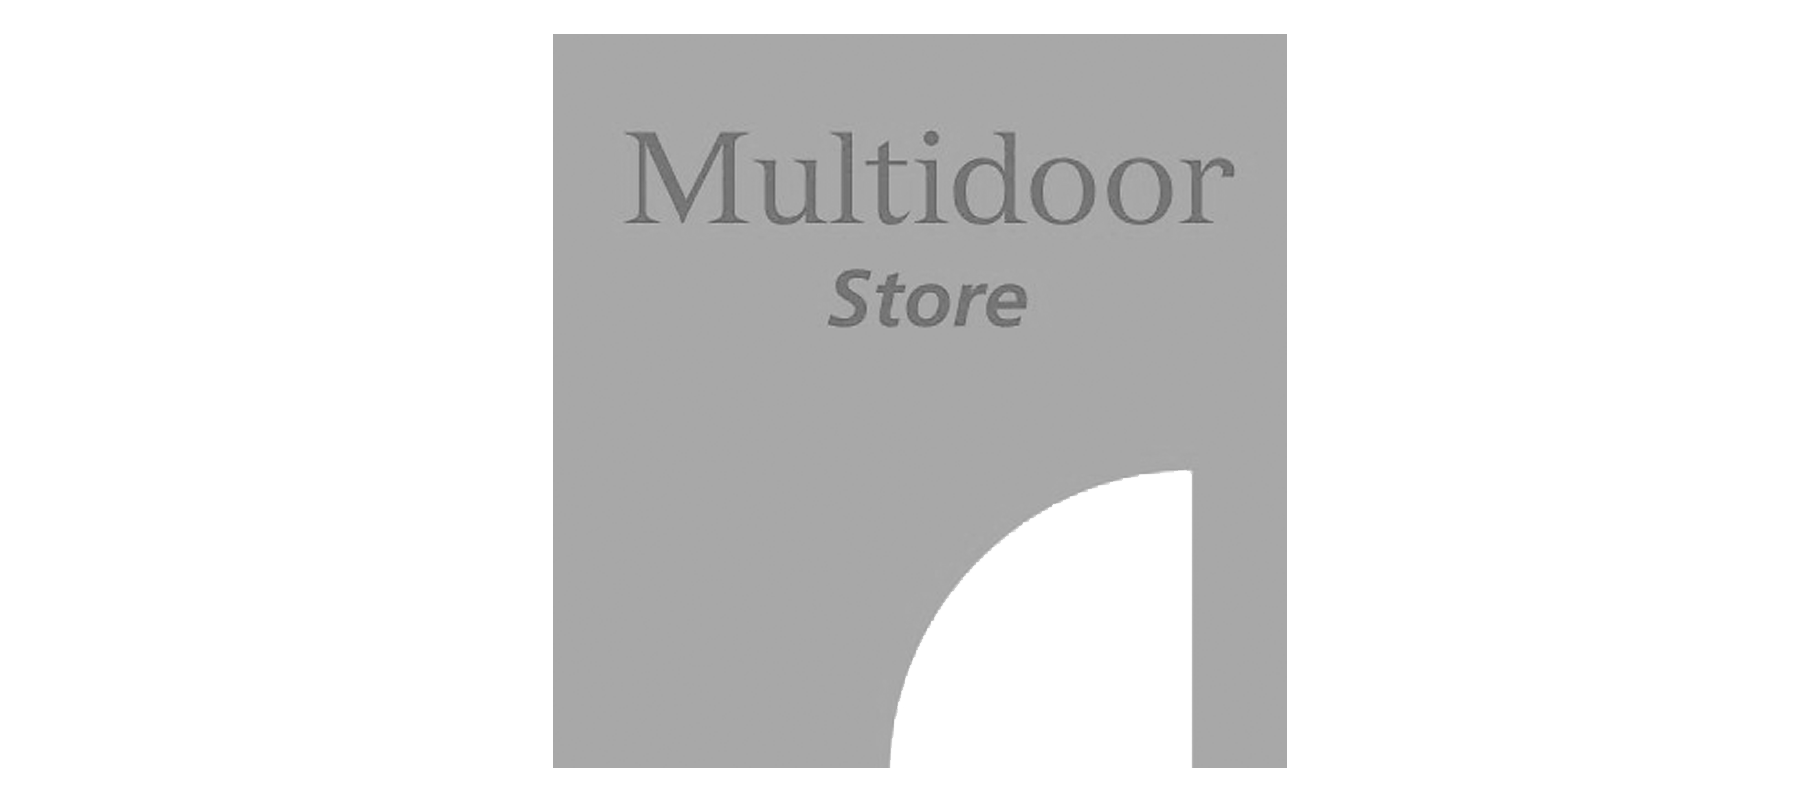 Multidoor Store